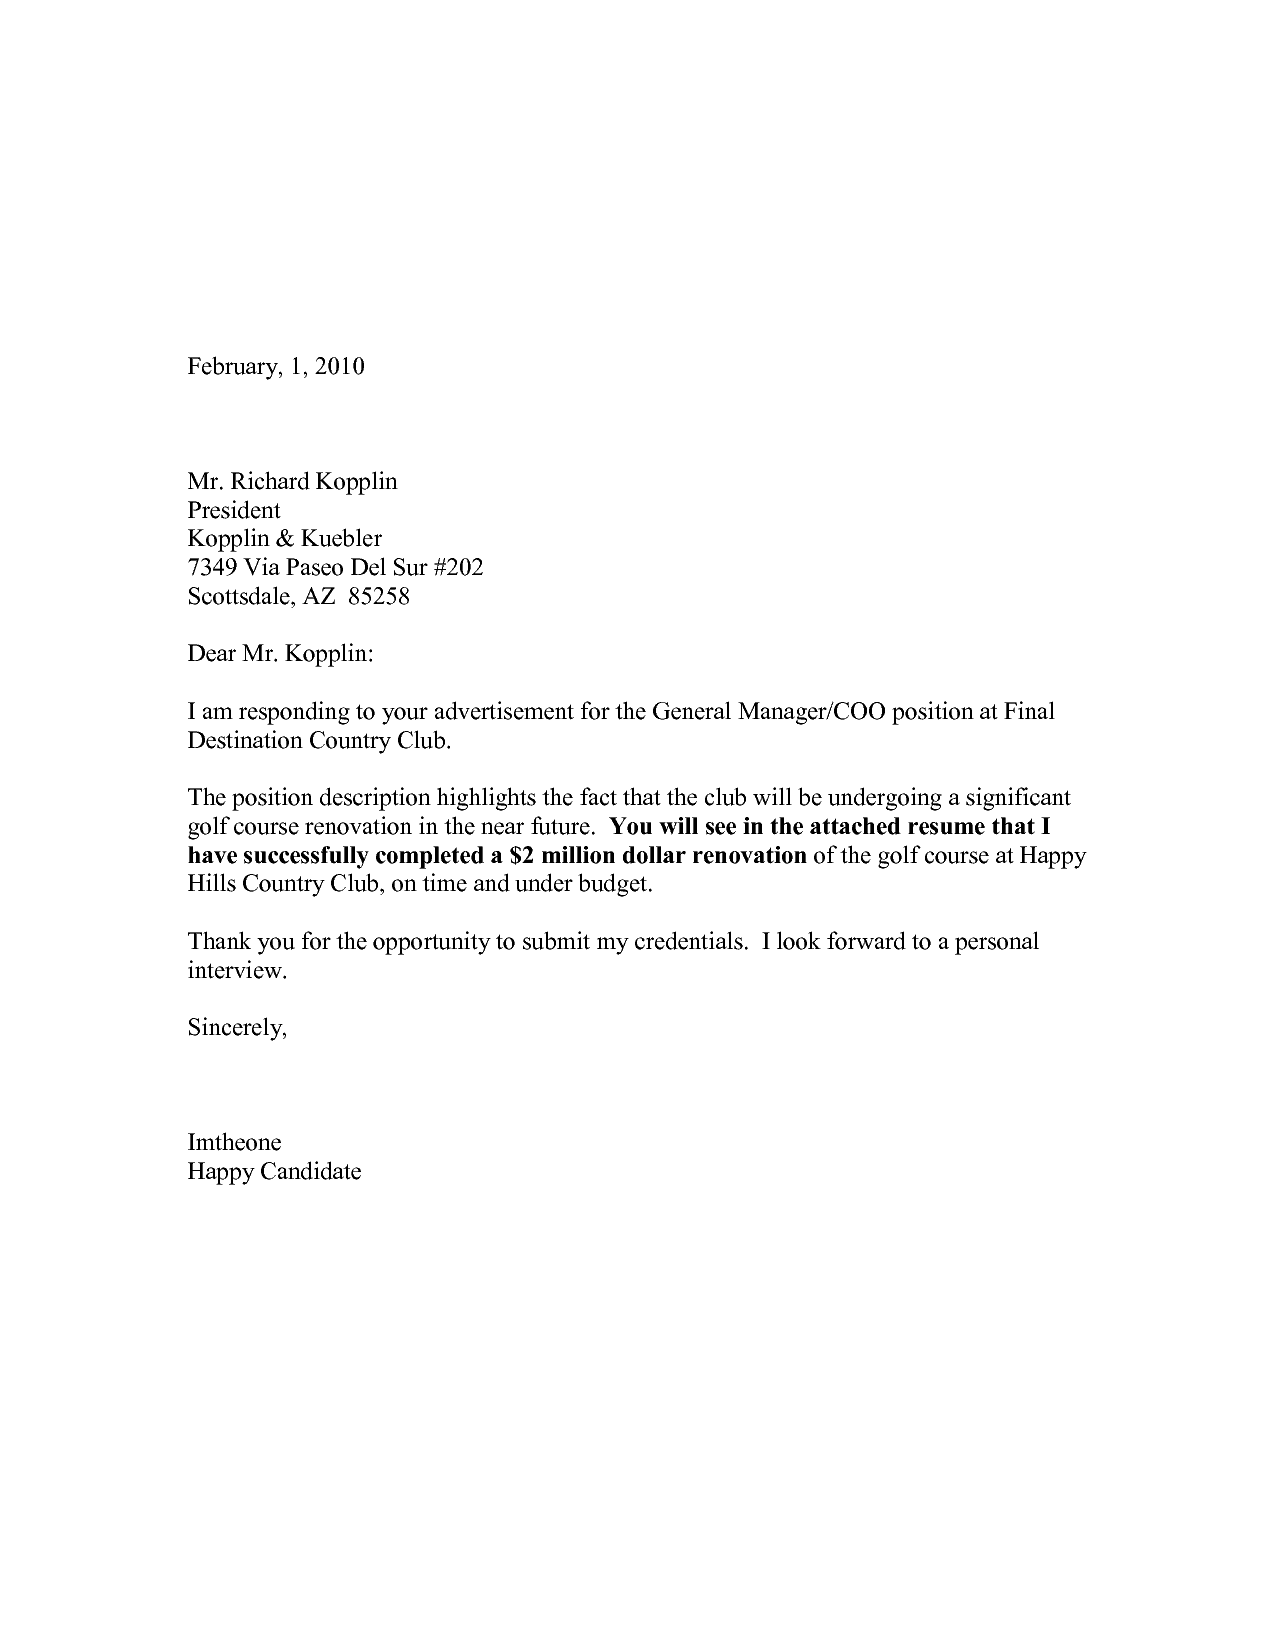 general cover letter resumes - Cover Letter And Resume Format